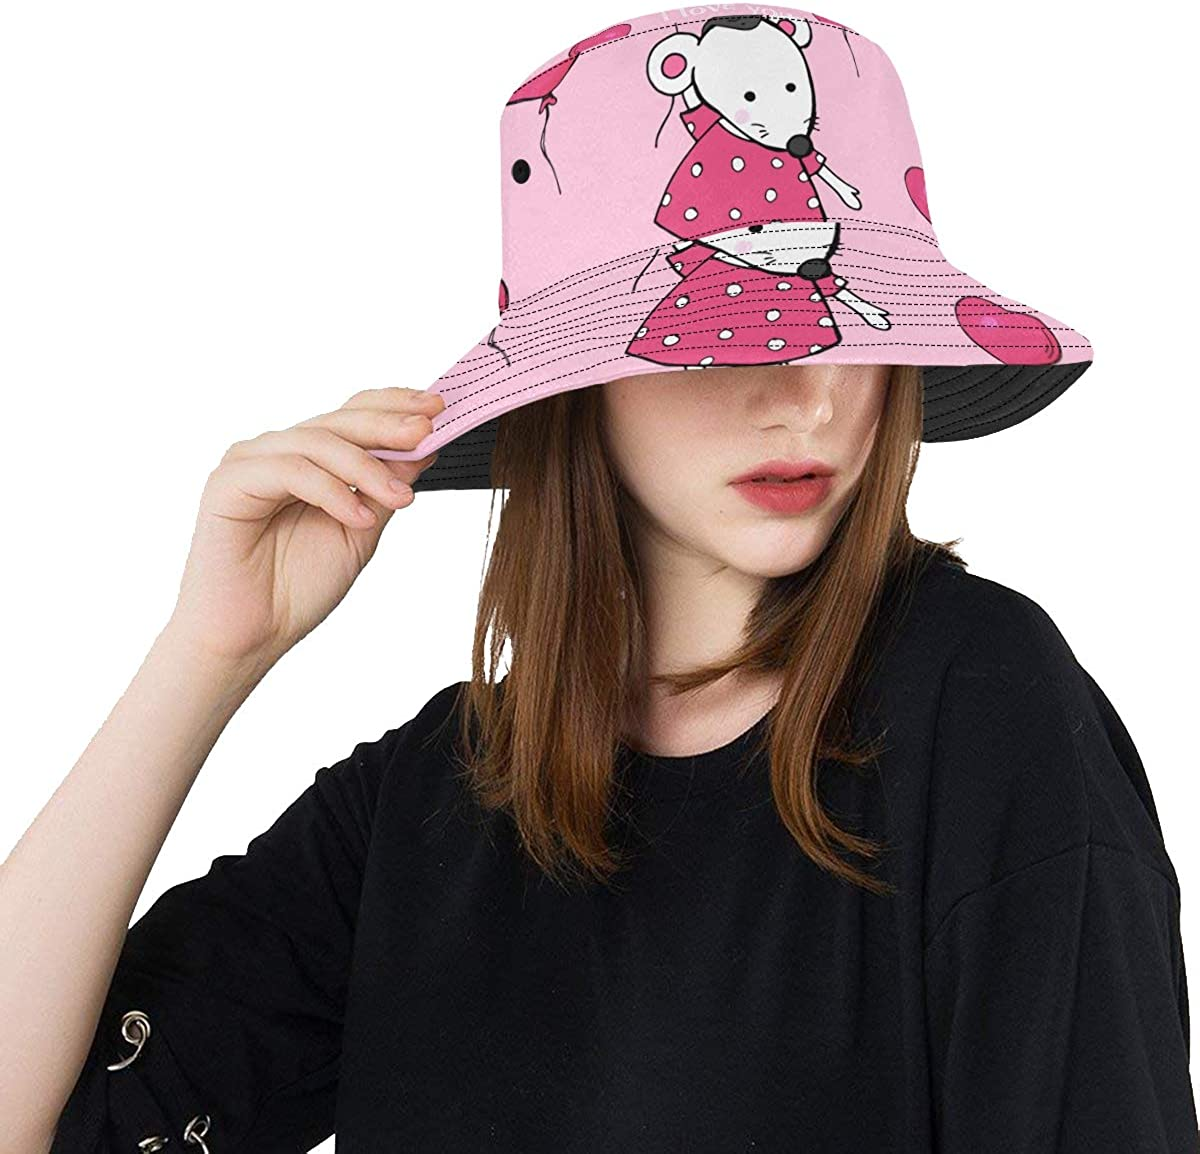 Cute Mouse Hold Ballons Summer Unisex Fishing Sun Top Bucket Hats for Kid Teens Women and Men with Packable Fisherman Cap for Outdoor Baseball Sport Picnic